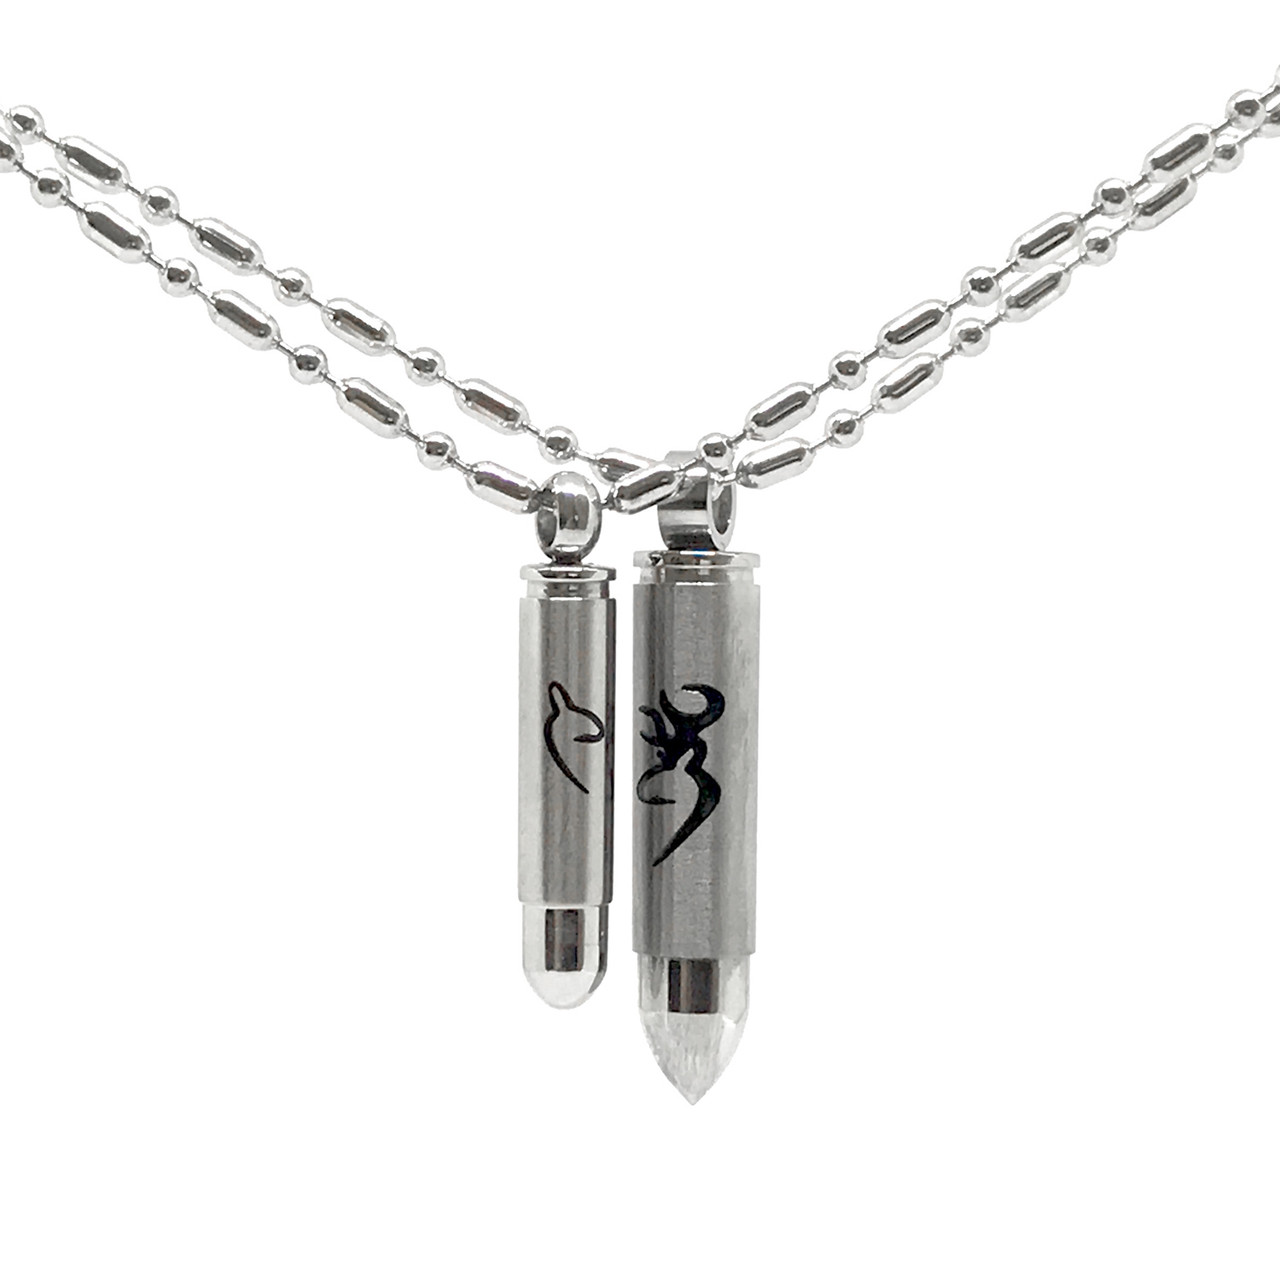 8a6d0dc412 Couples Hunting Jewelry - Bullet Deer Necklaces. See 1 more picture